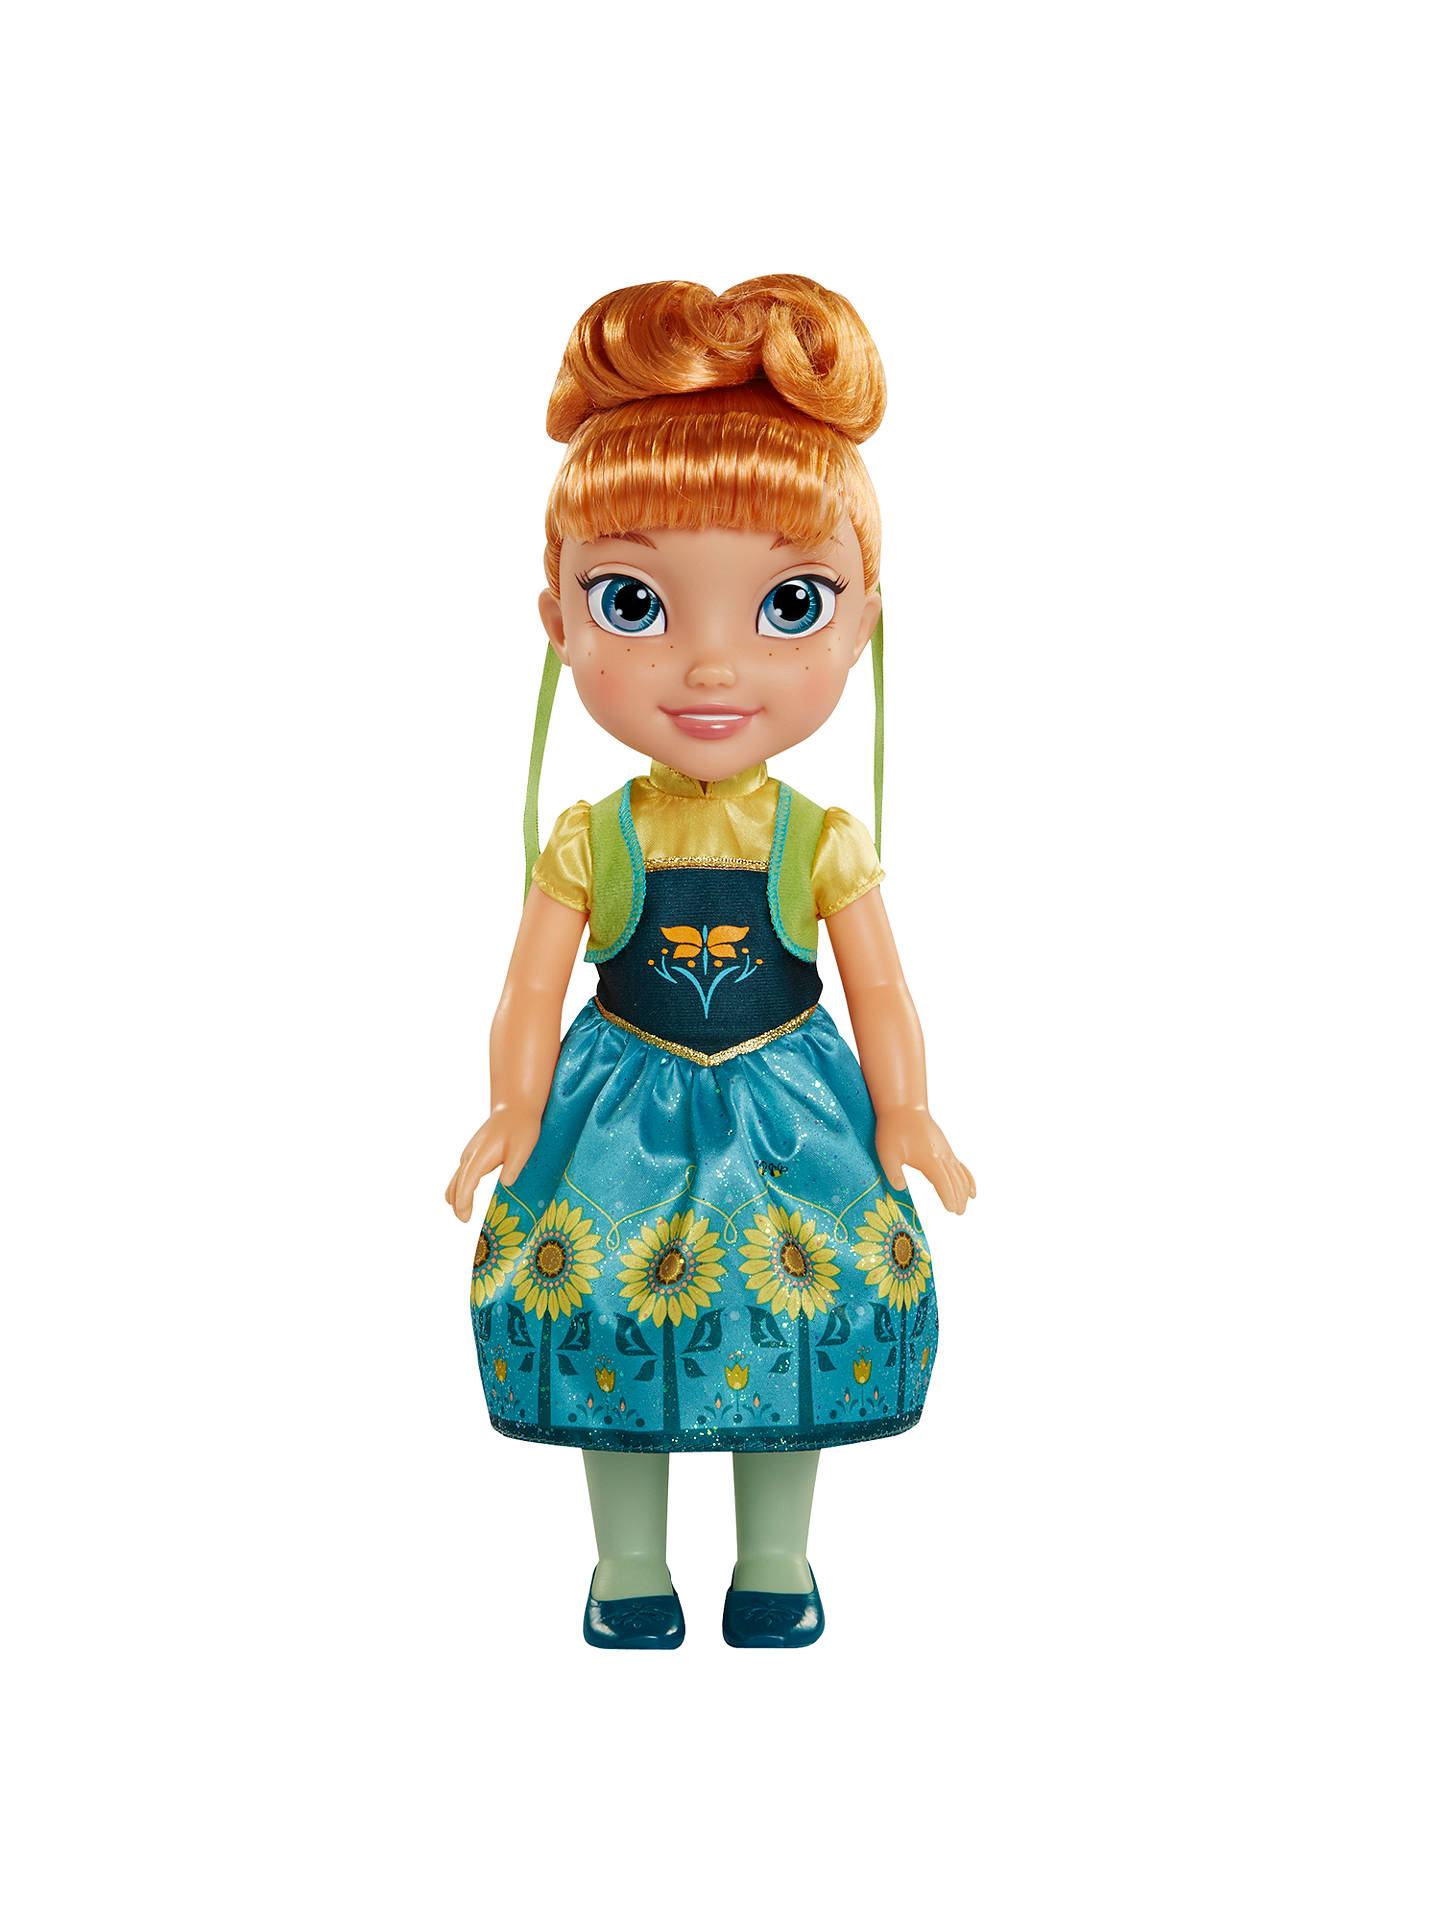 Disney Princess Frozen Anna Toddler Doll At John Lewis